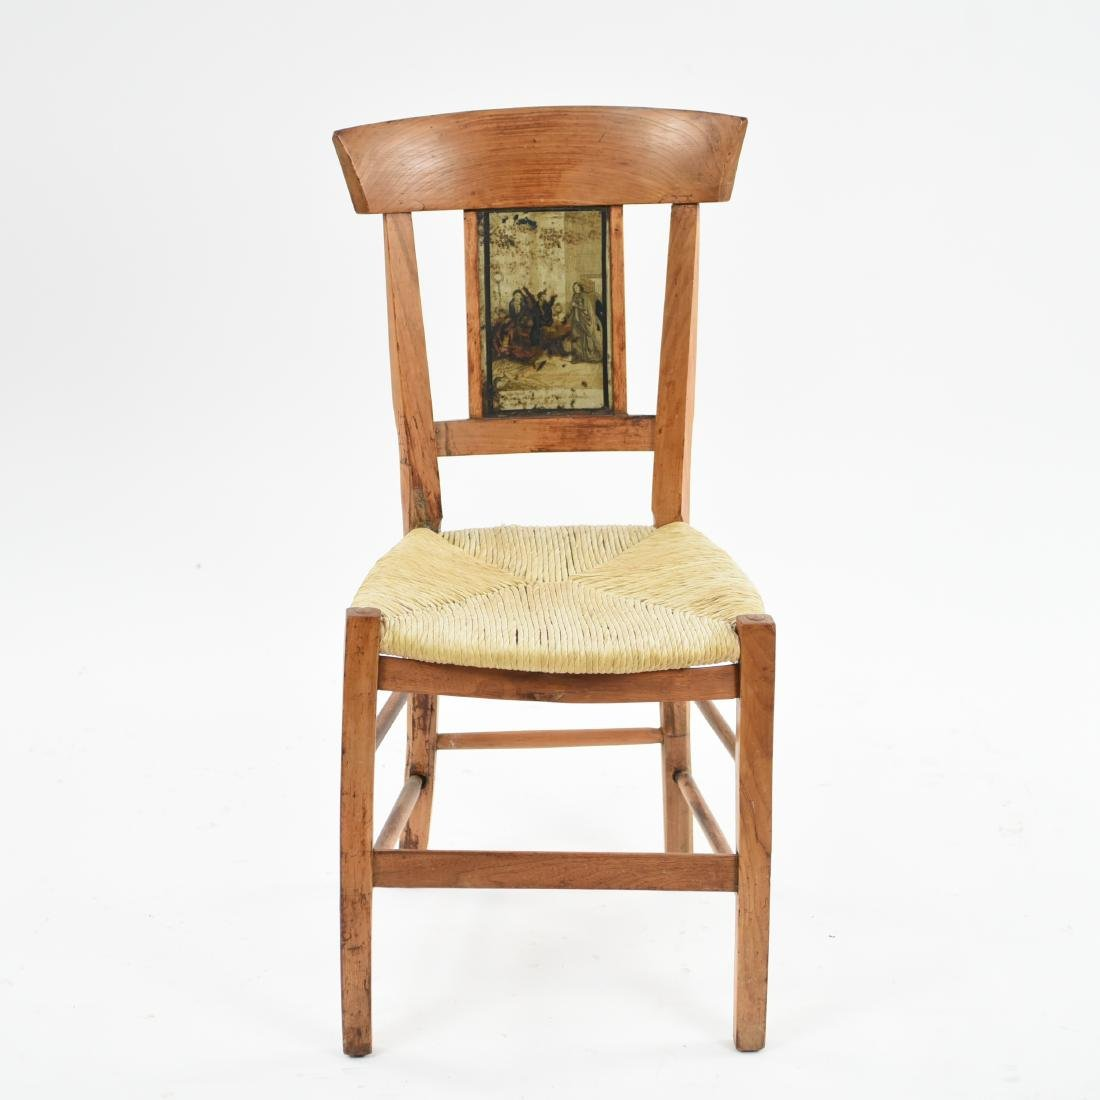 19TH C. PAINT DECORATED SIDE CHAIR